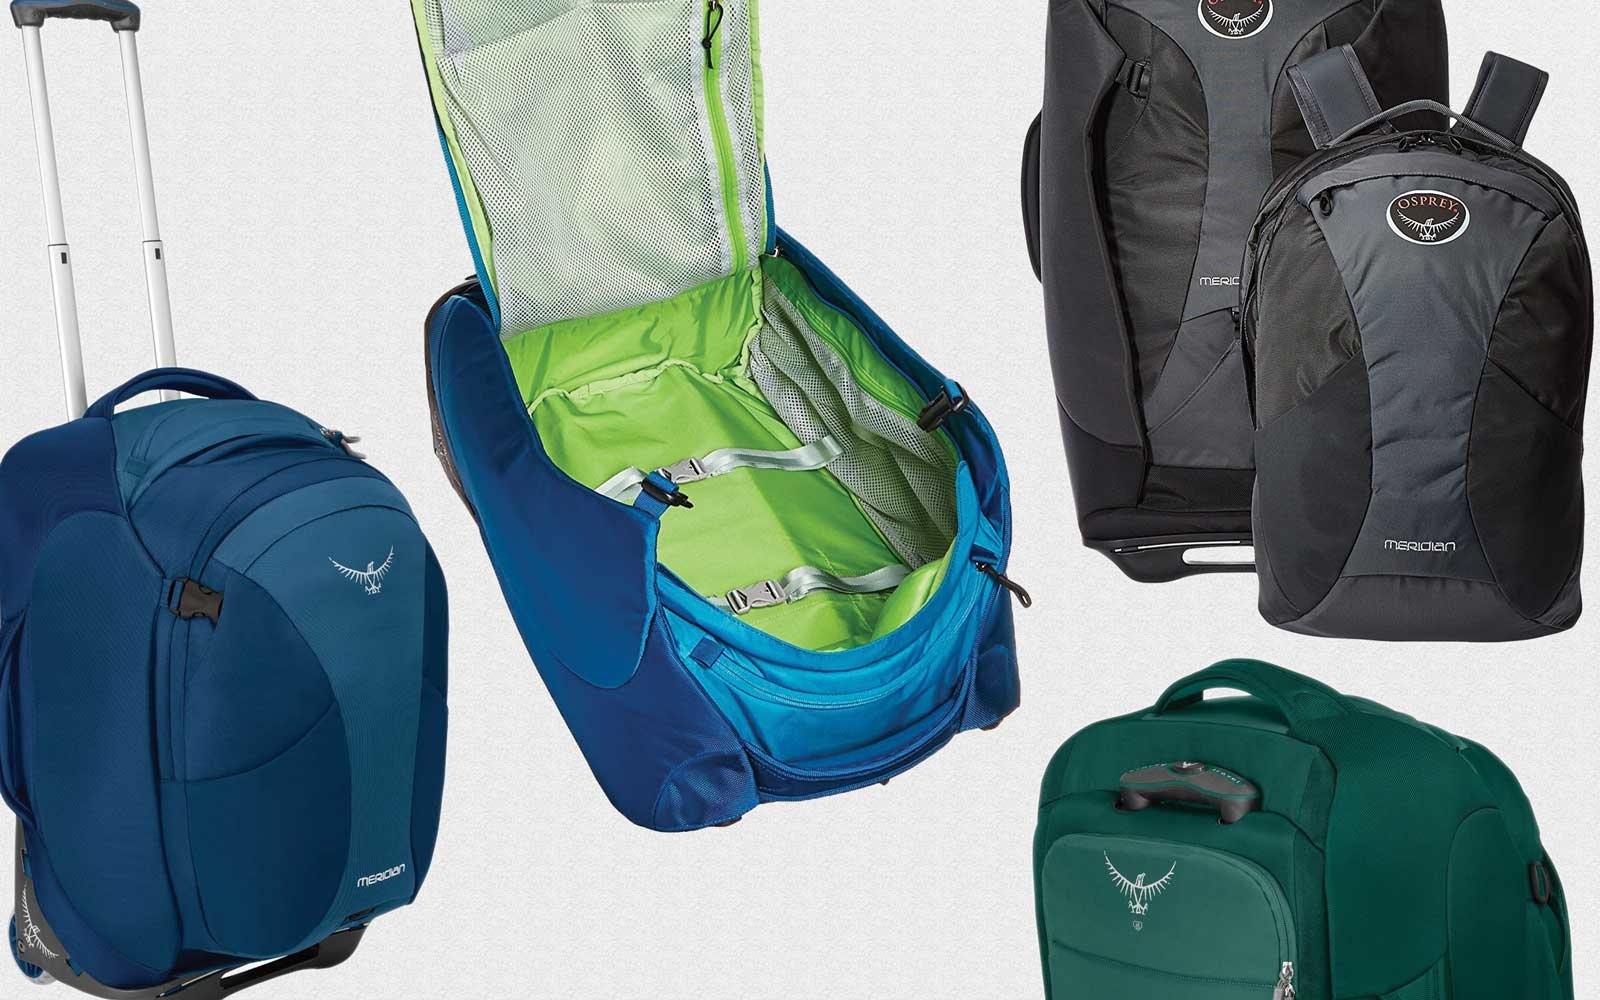 f0da24c5b5 The Best Carry-on Bag You Can Buy